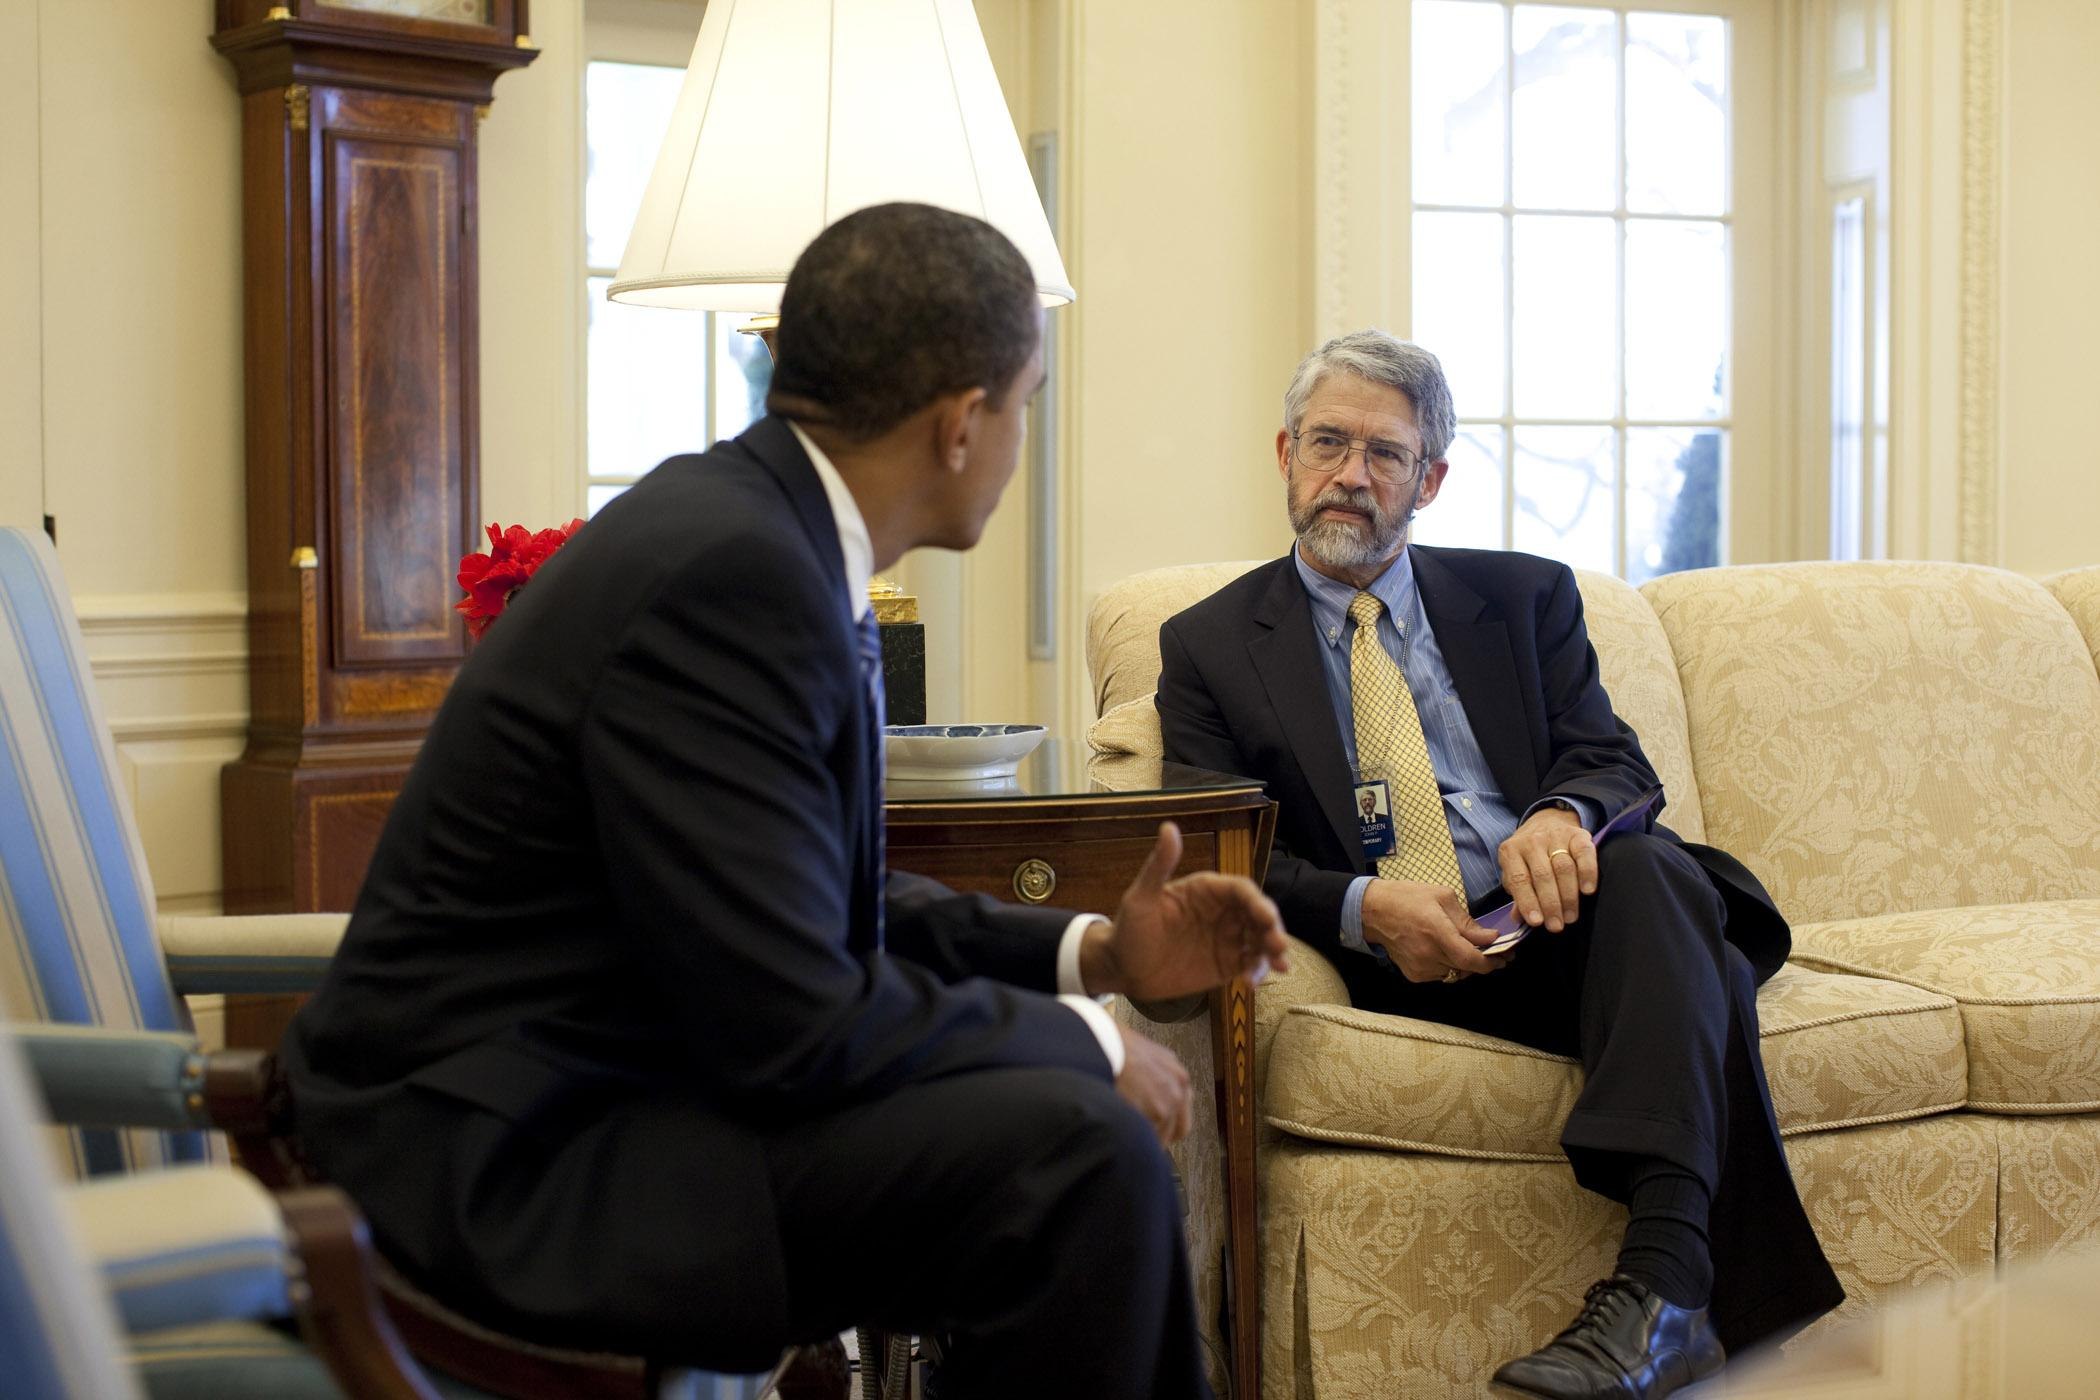 Former President Barack Obama with Science and Technology Adviser John P. Holdren (U.S. National Archives)